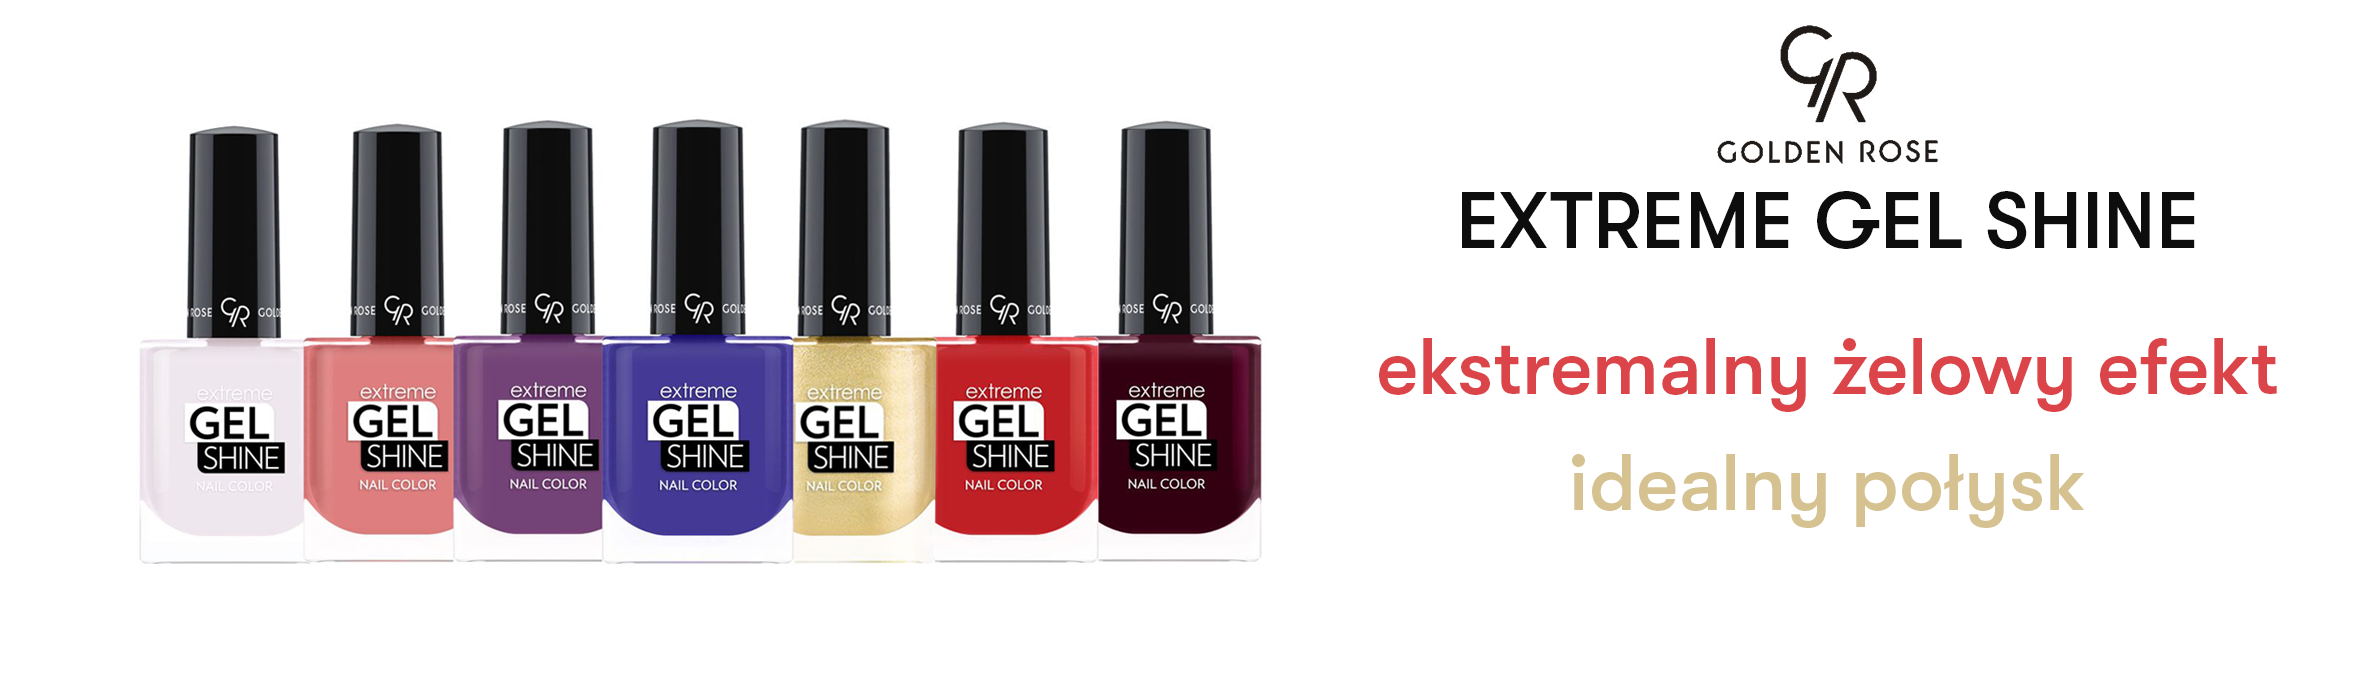 Golden Rose Extreme Gel Shine